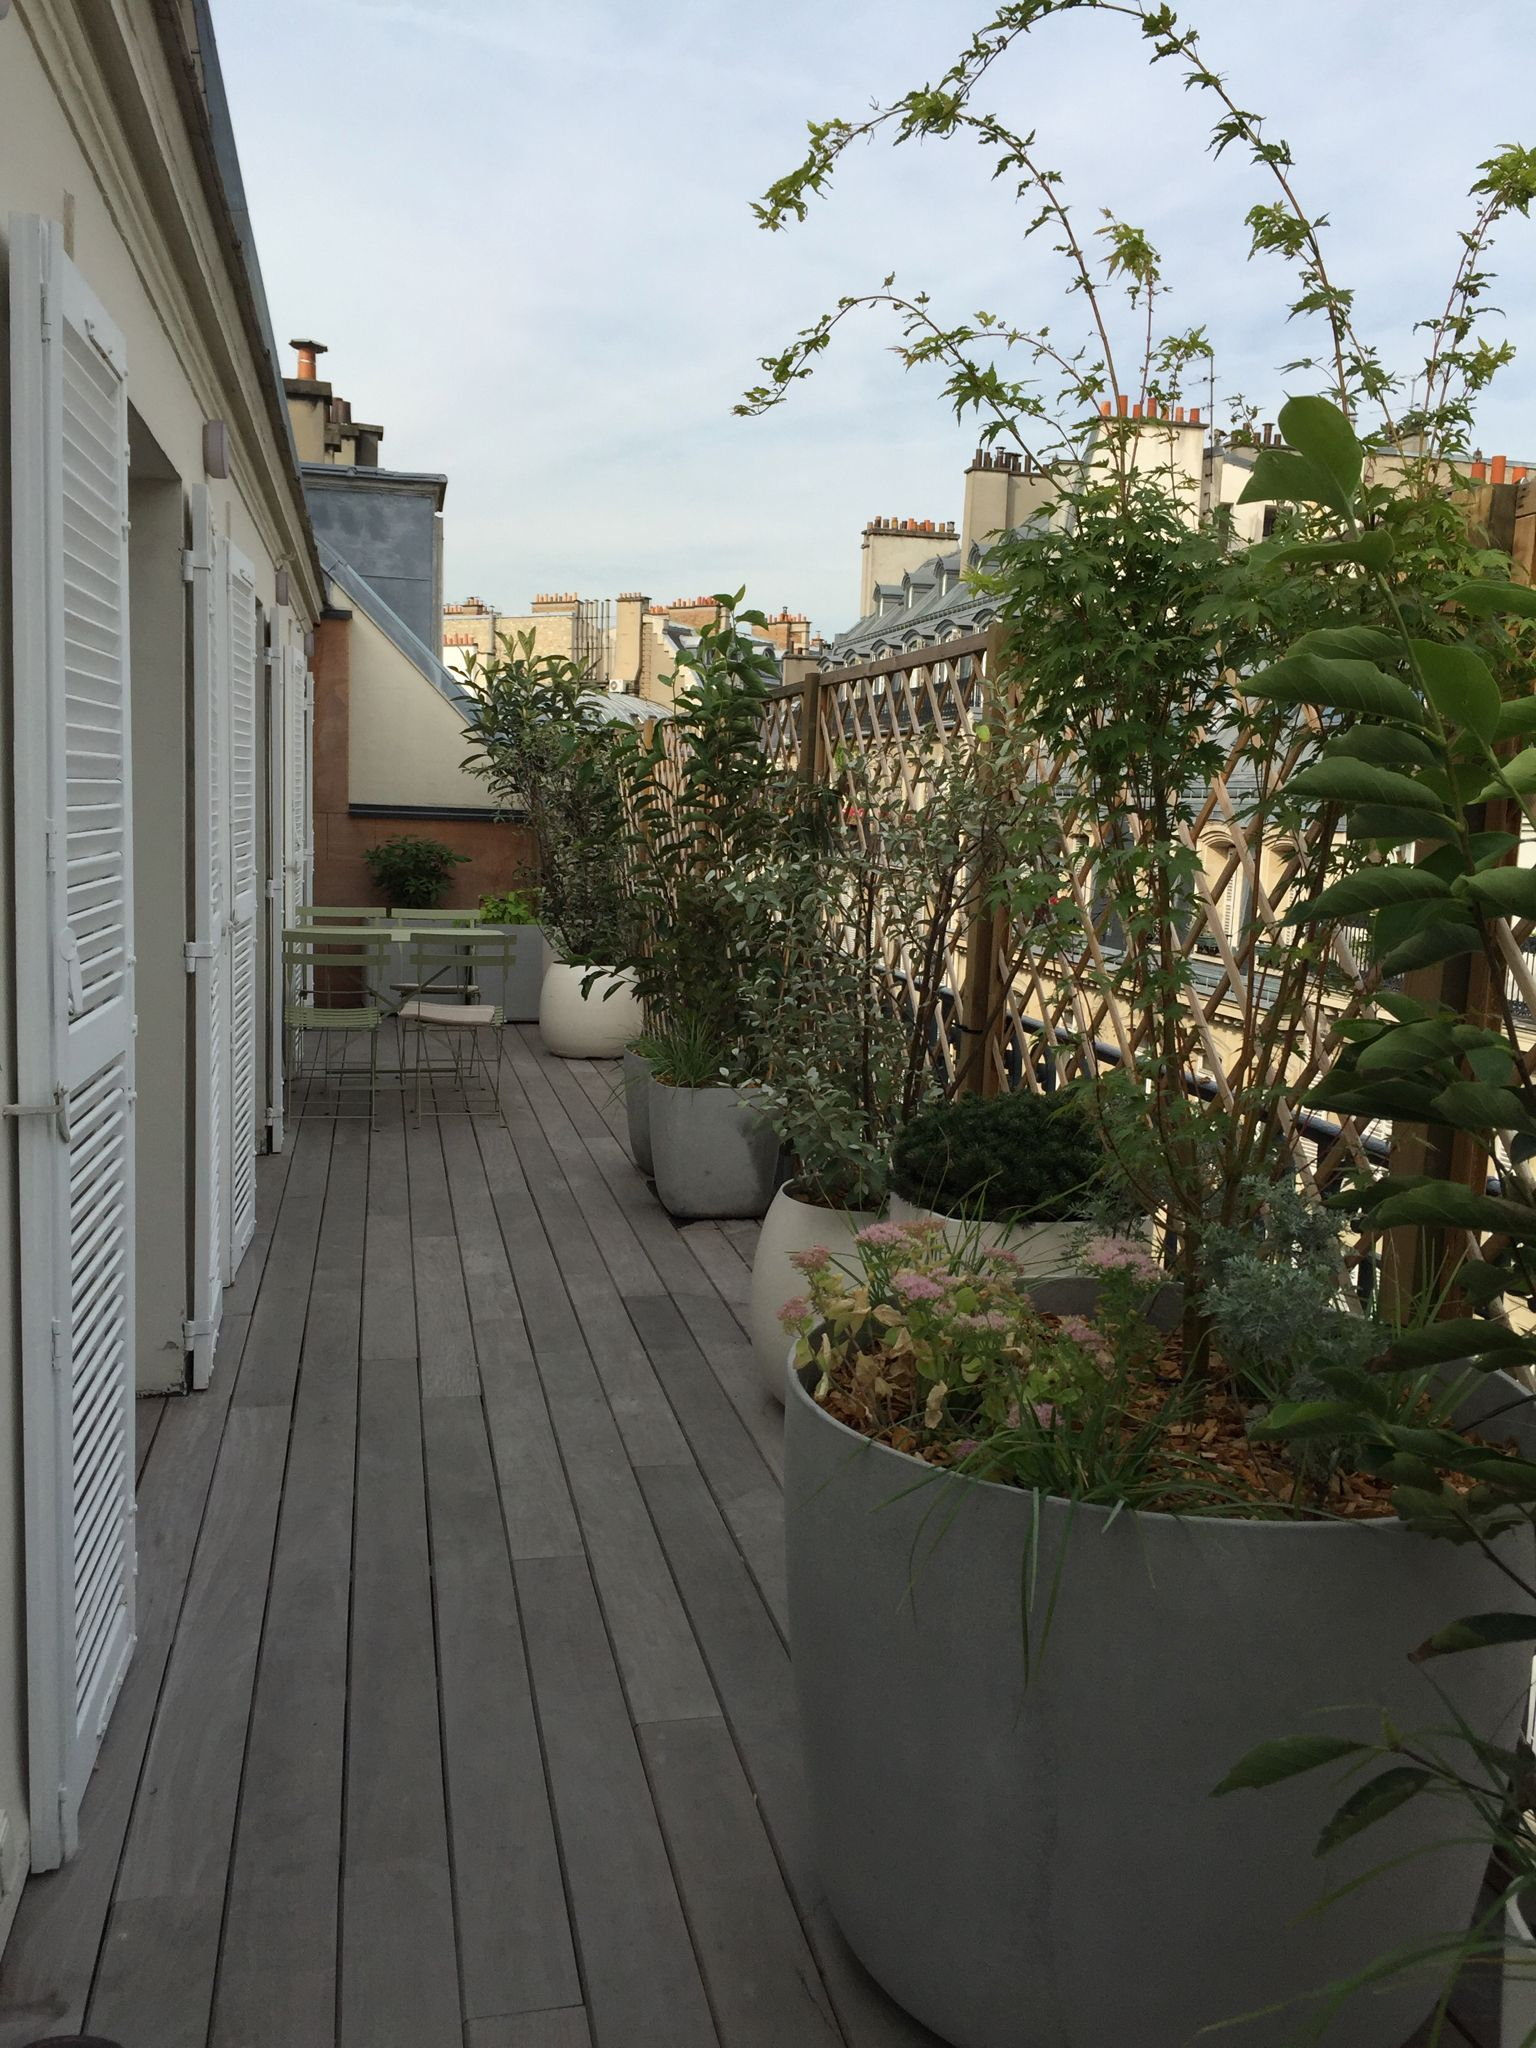 Comment am nager un balcon filant parisien balcoon - Amenagement petit balcon parisien ...